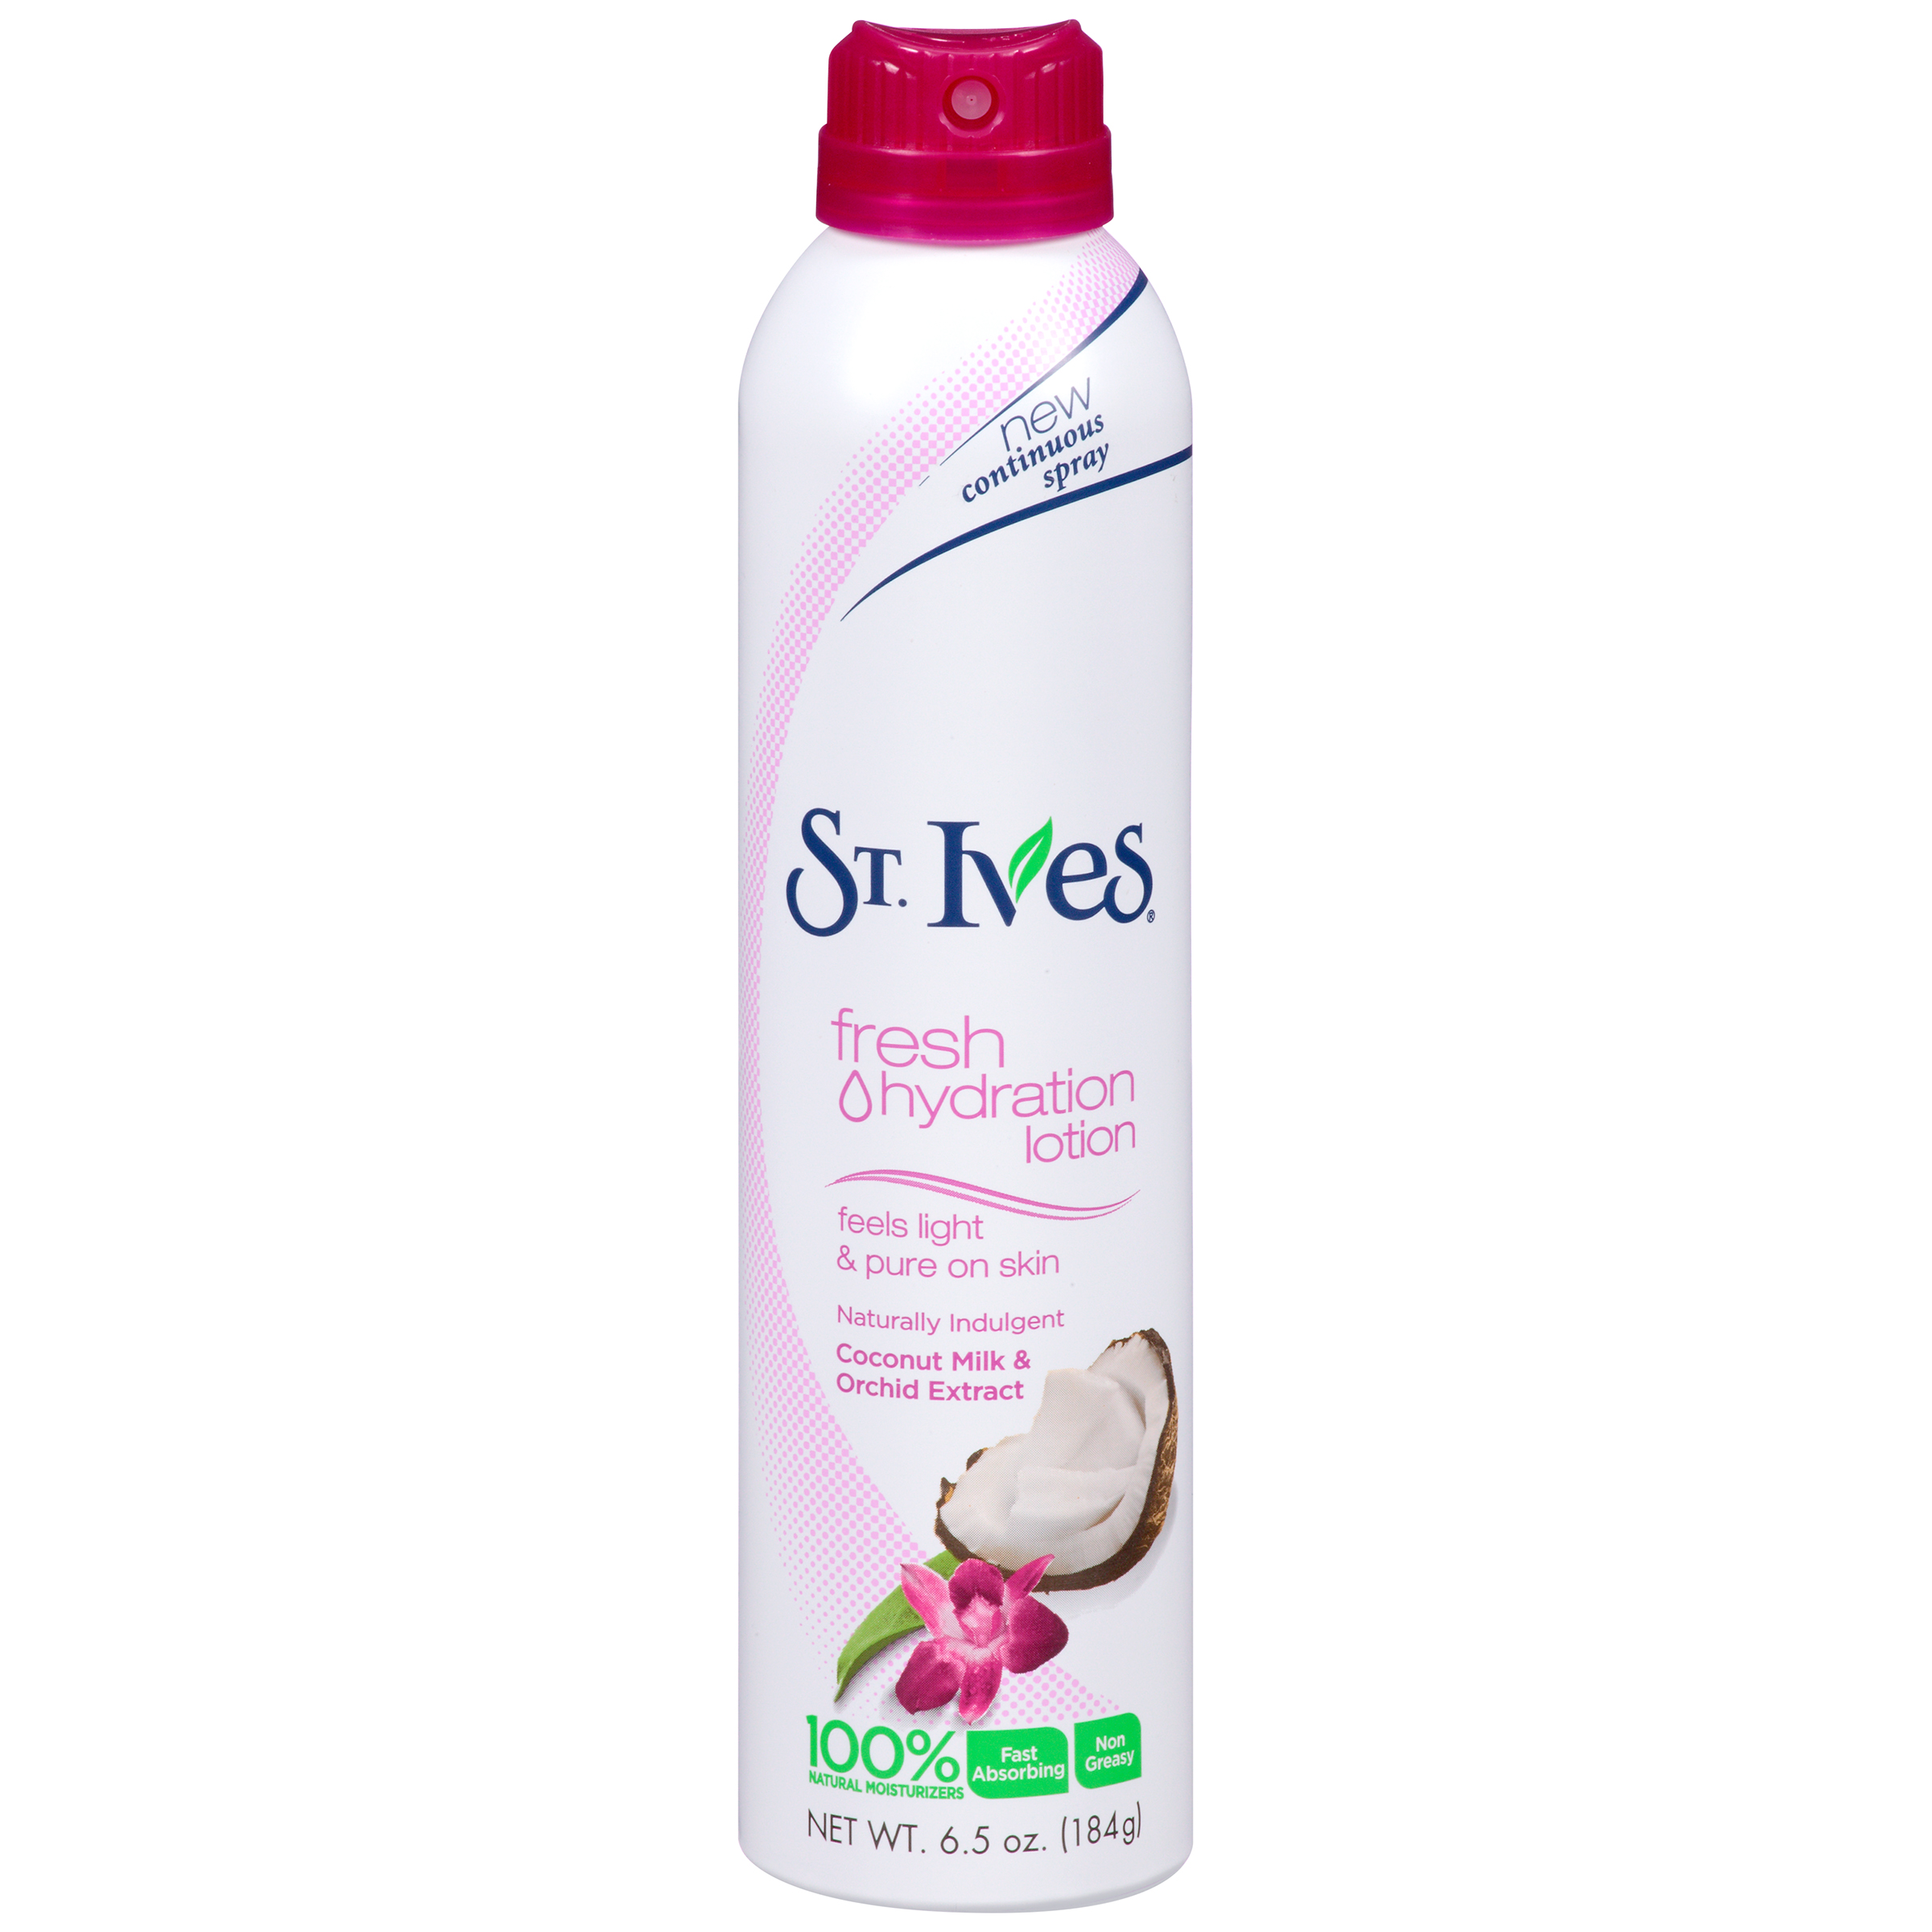 St. Ives Fresh Hydration Lotion Coconut Milk & Orchid Extract - 6.5 oz (184 g)